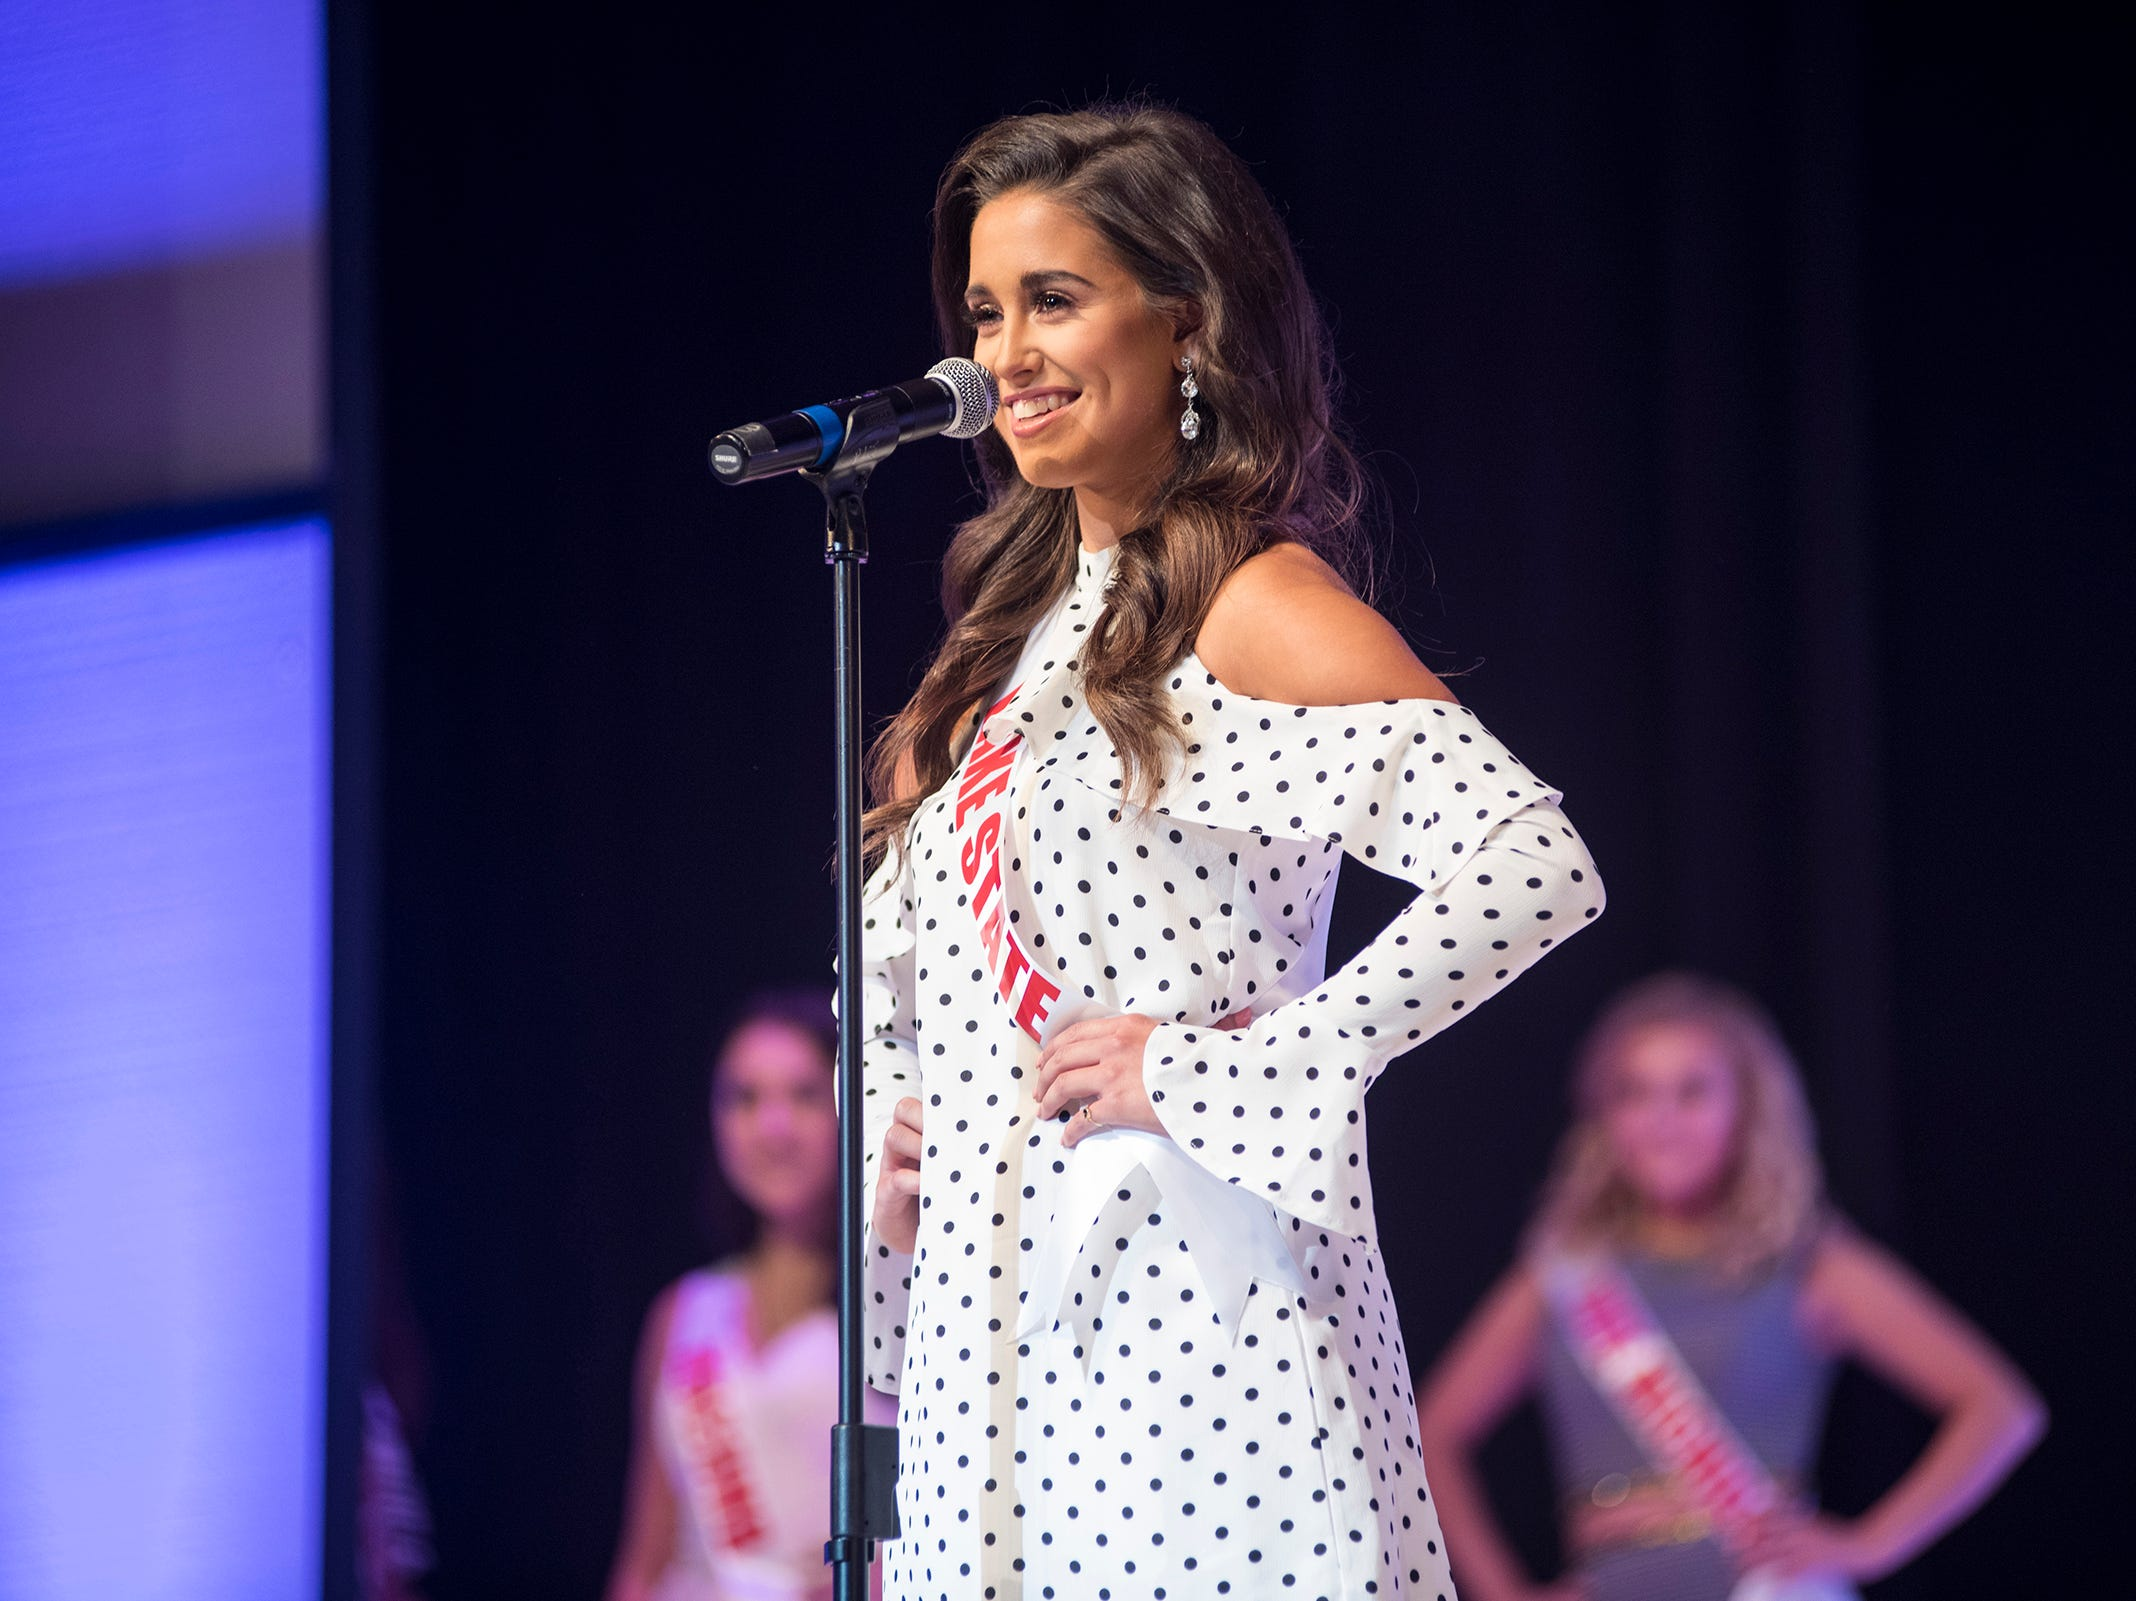 Miss Lake State Teen Keri Martin introduces herself Saturday, Sept. 22, 2018 at the start of the Miss Michigan Teen USA competition at McMorran Theater.